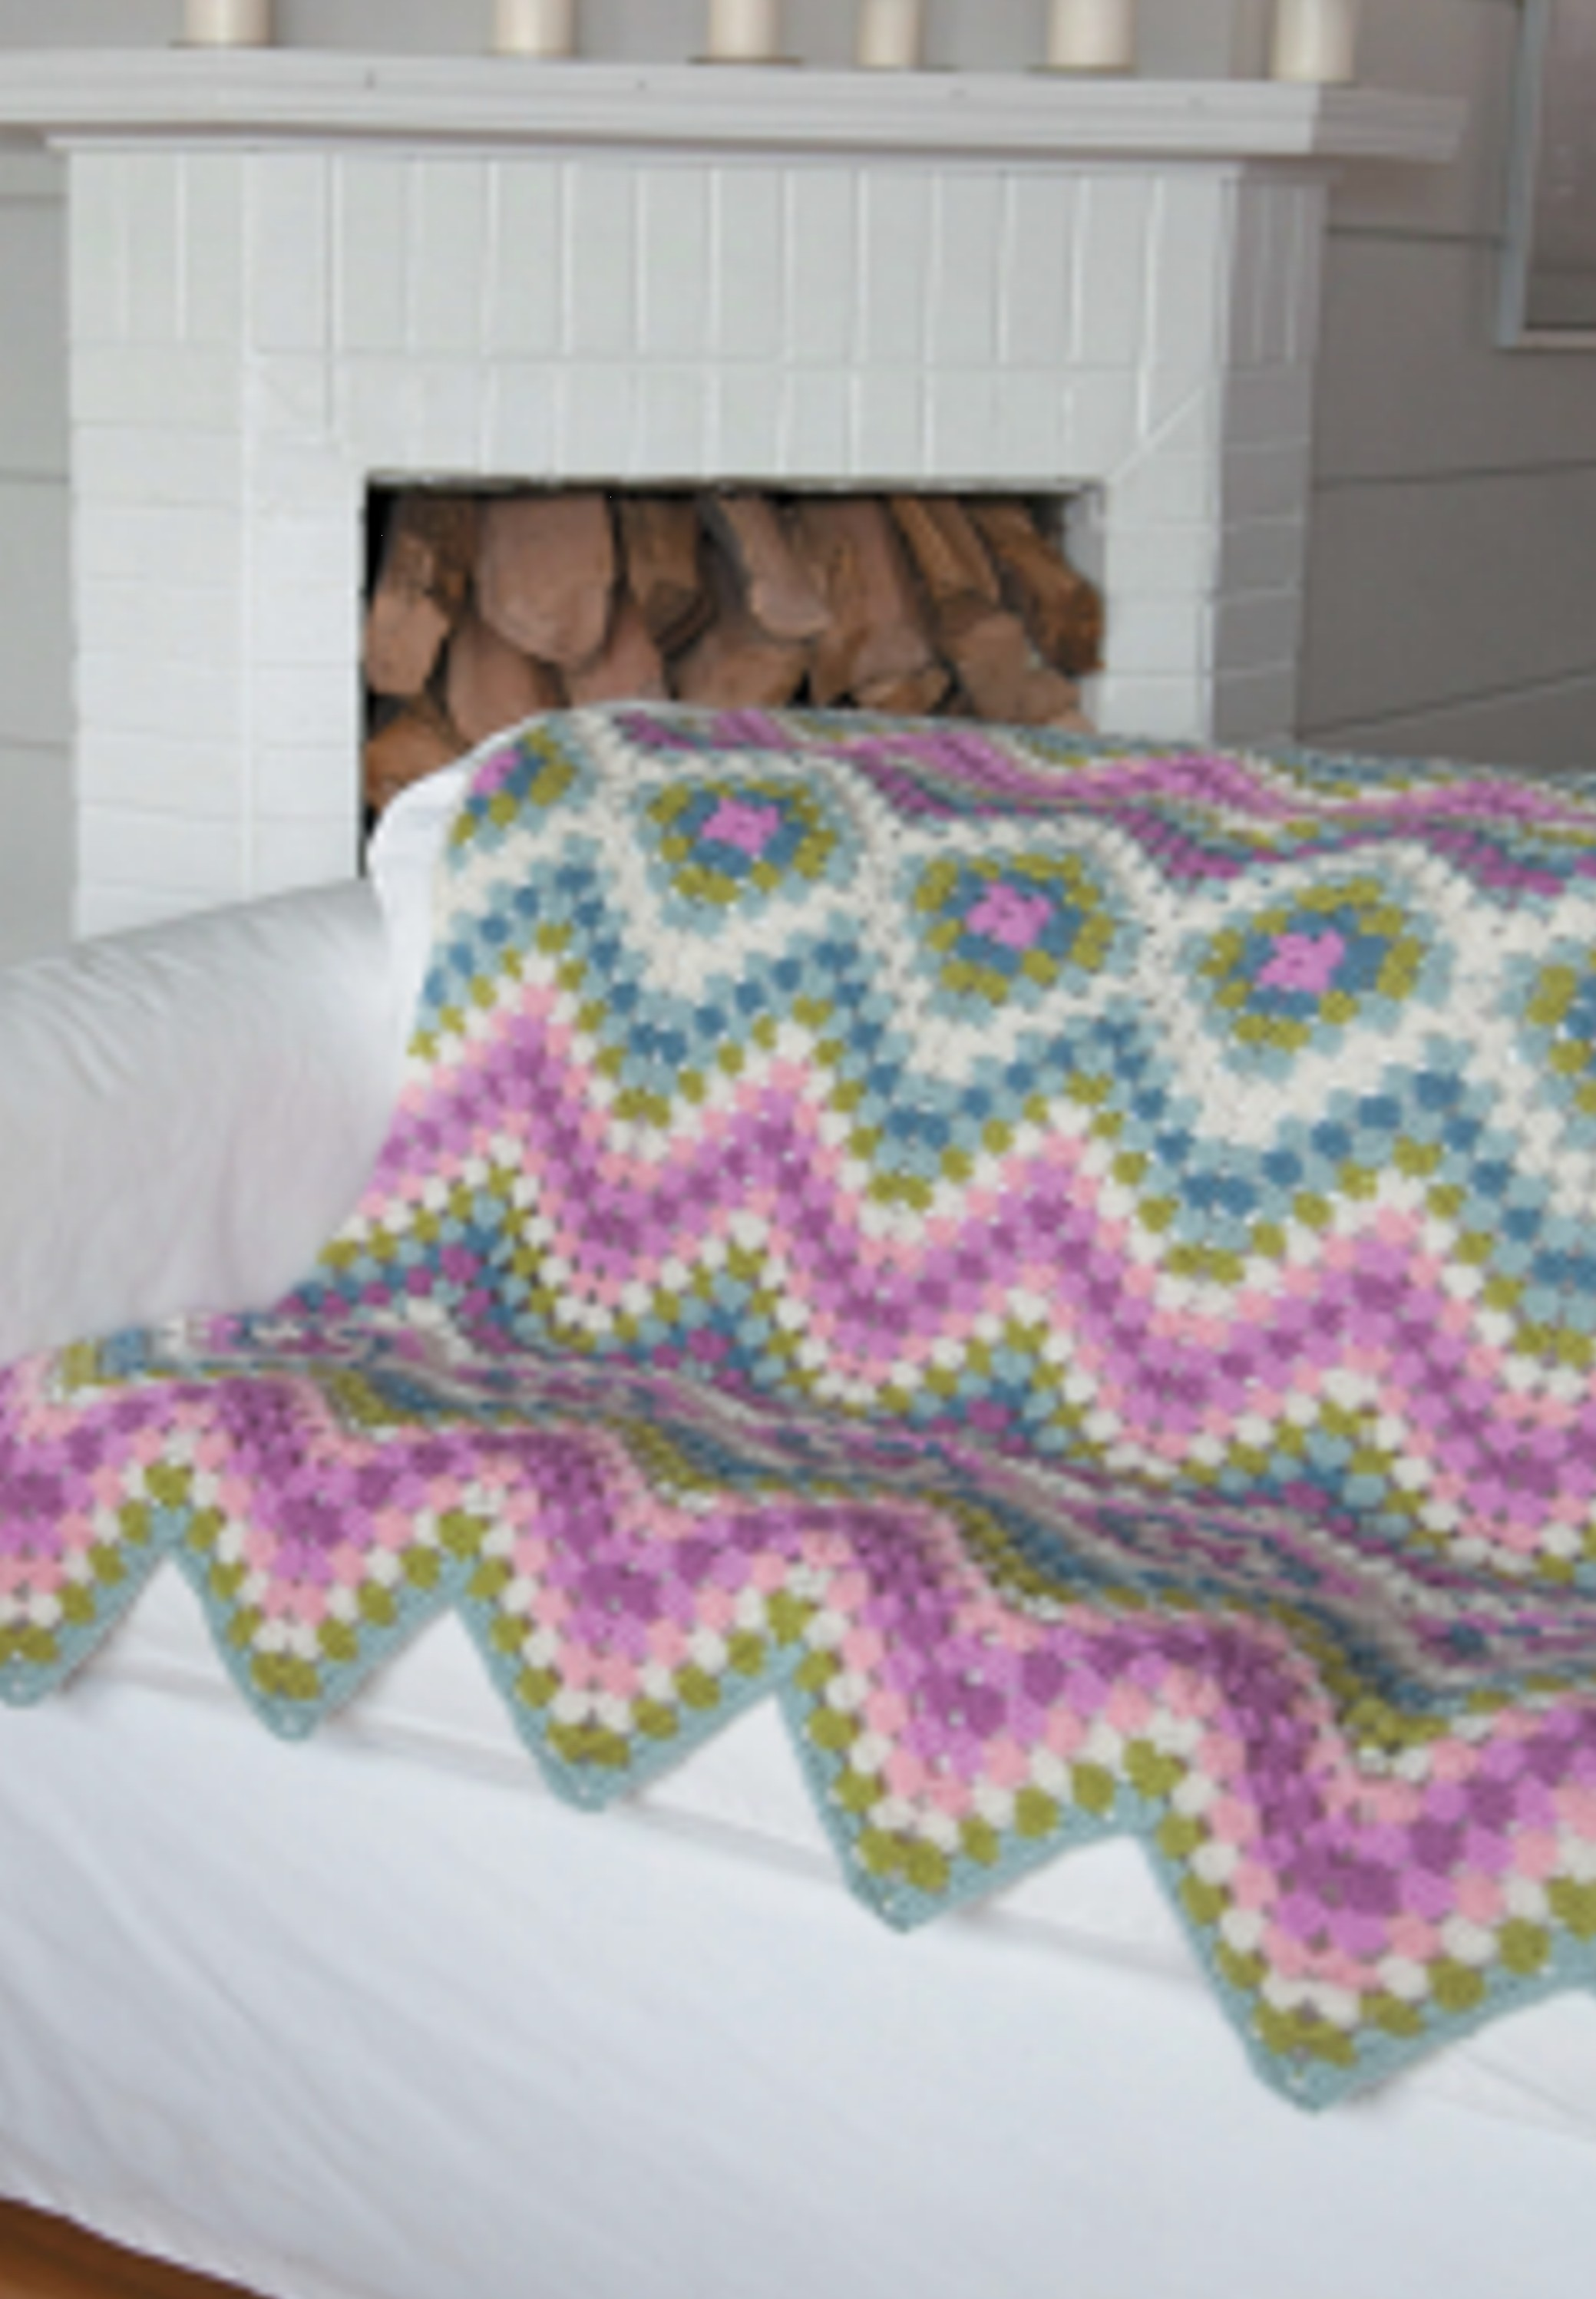 Crochet | hooked-on-crafting.com | Page 12